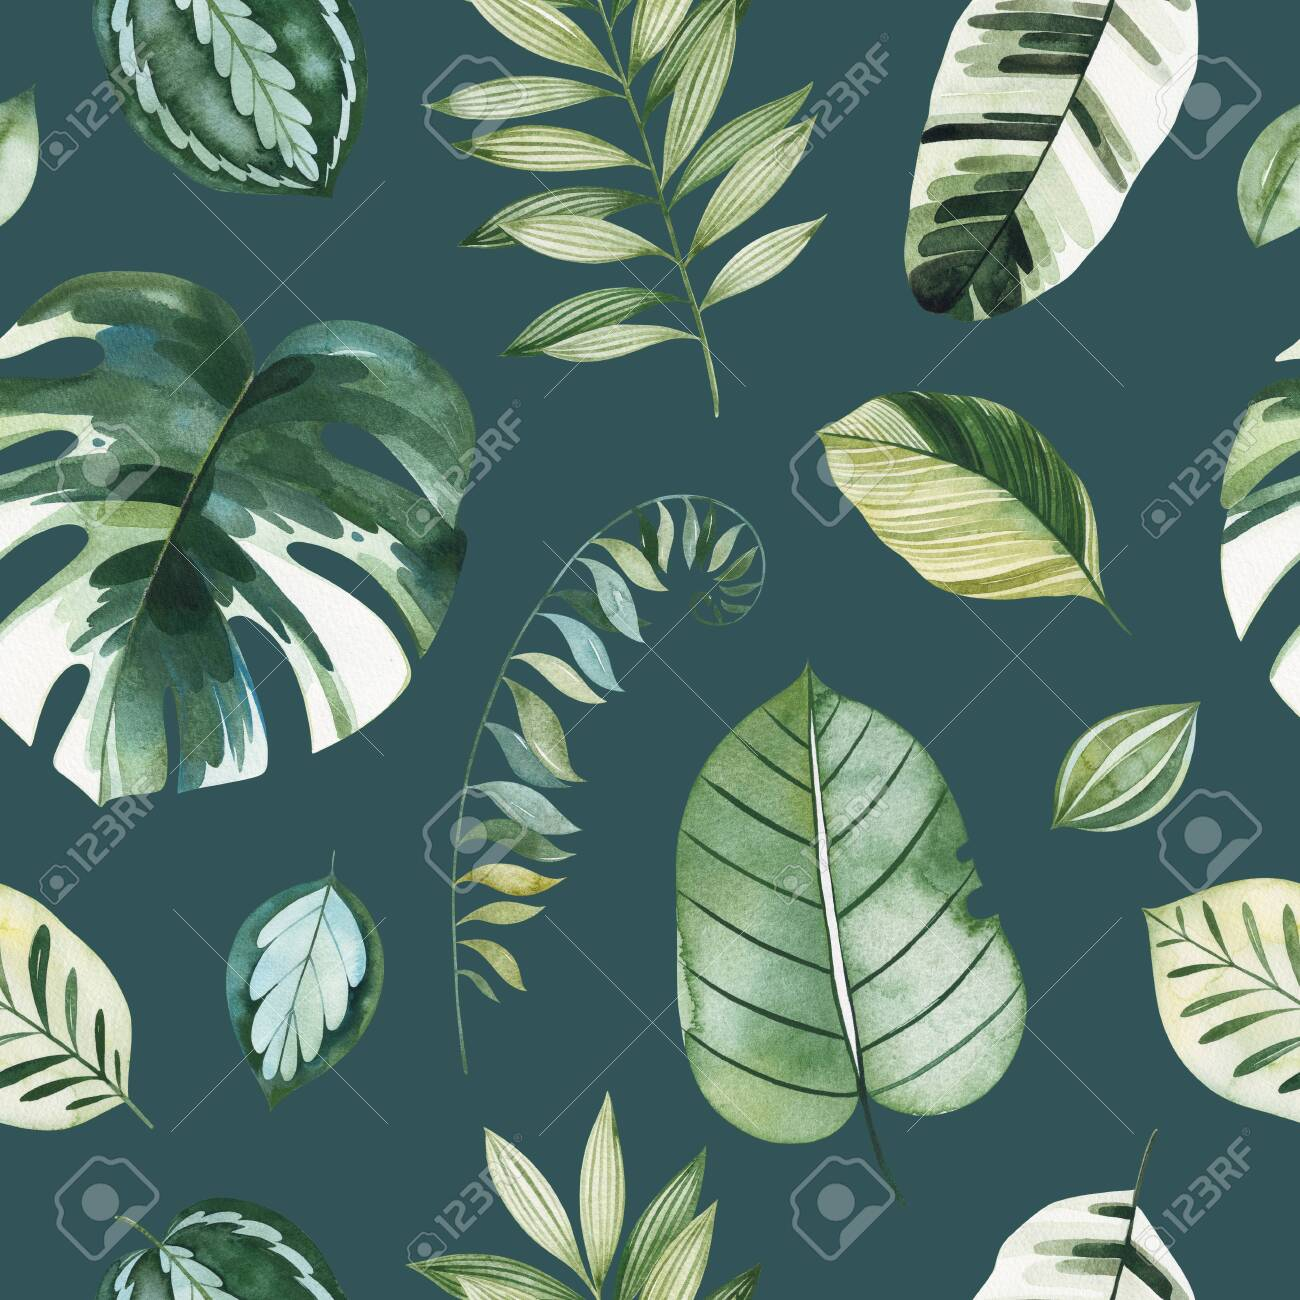 Tropical Watercolor Seamless Texture Dark Background With Green Leaves Branches Palm Leaf Perfect For Wedding Wallpaper Print Packaging And Cover Design And Your Unique Creation Stock Photo Picture And Royalty Free Image Image 134837158